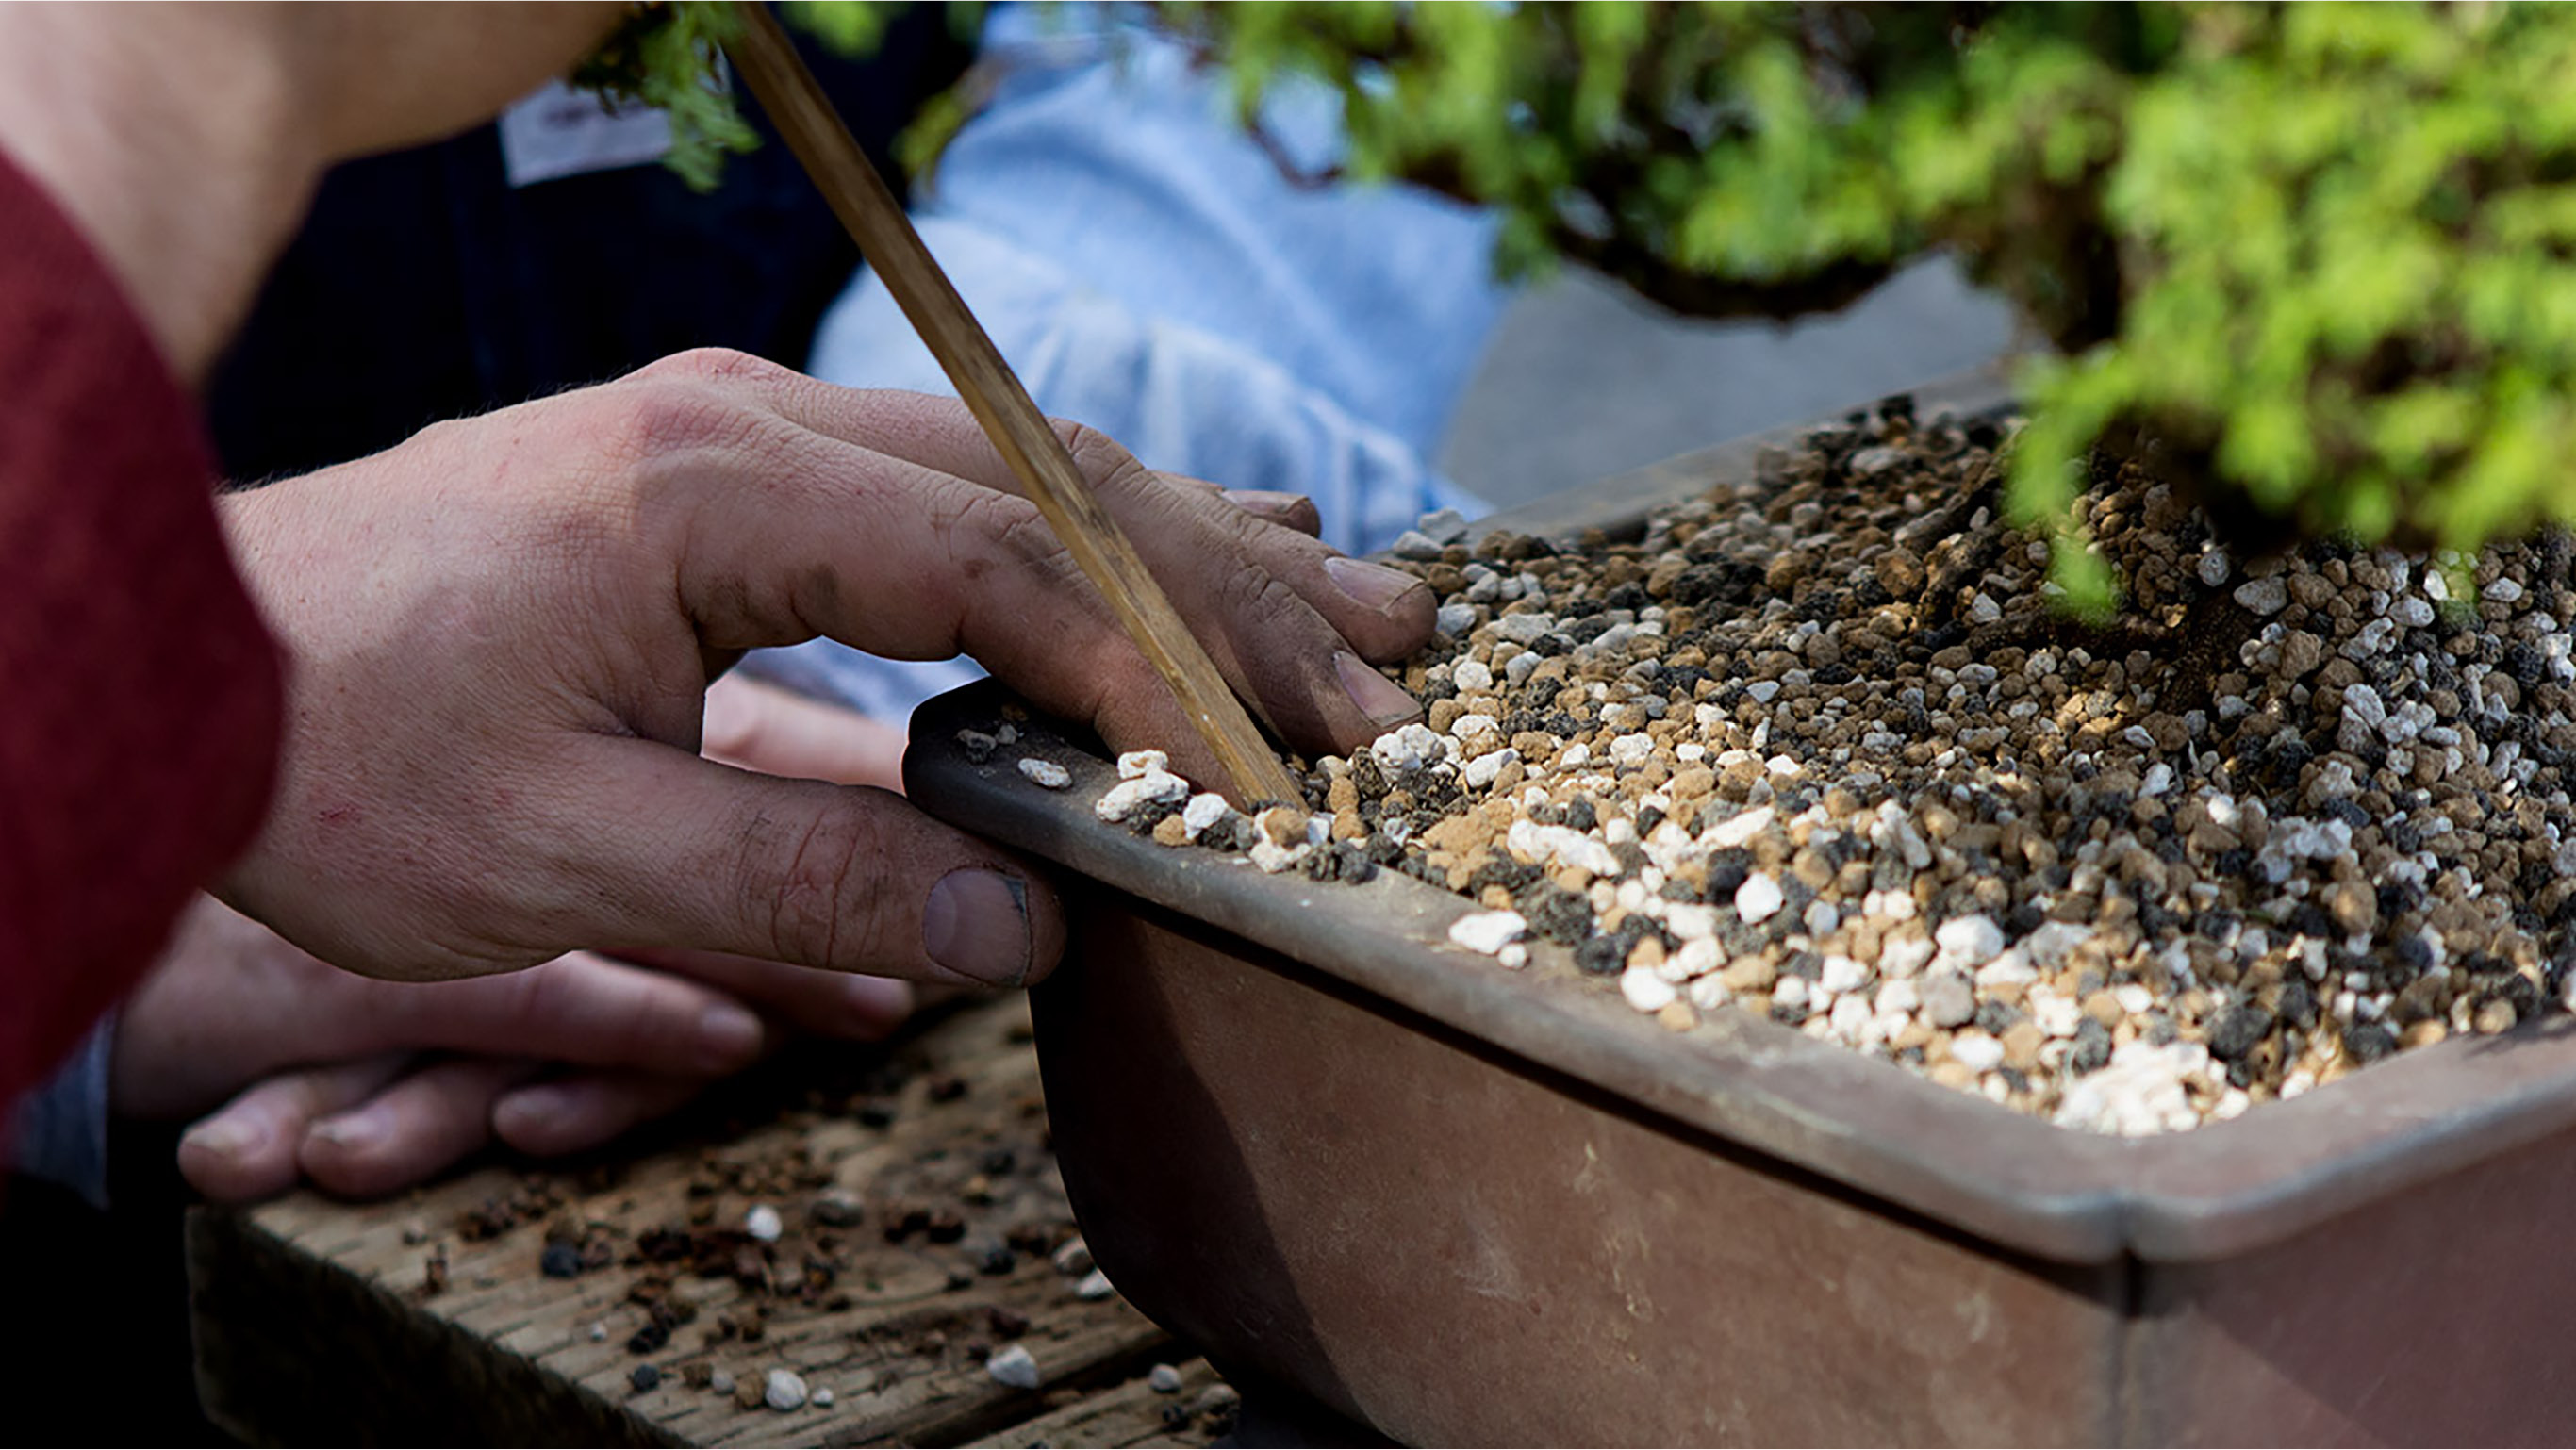 A photo of a chopstick being used to place soil in a bonsai container.